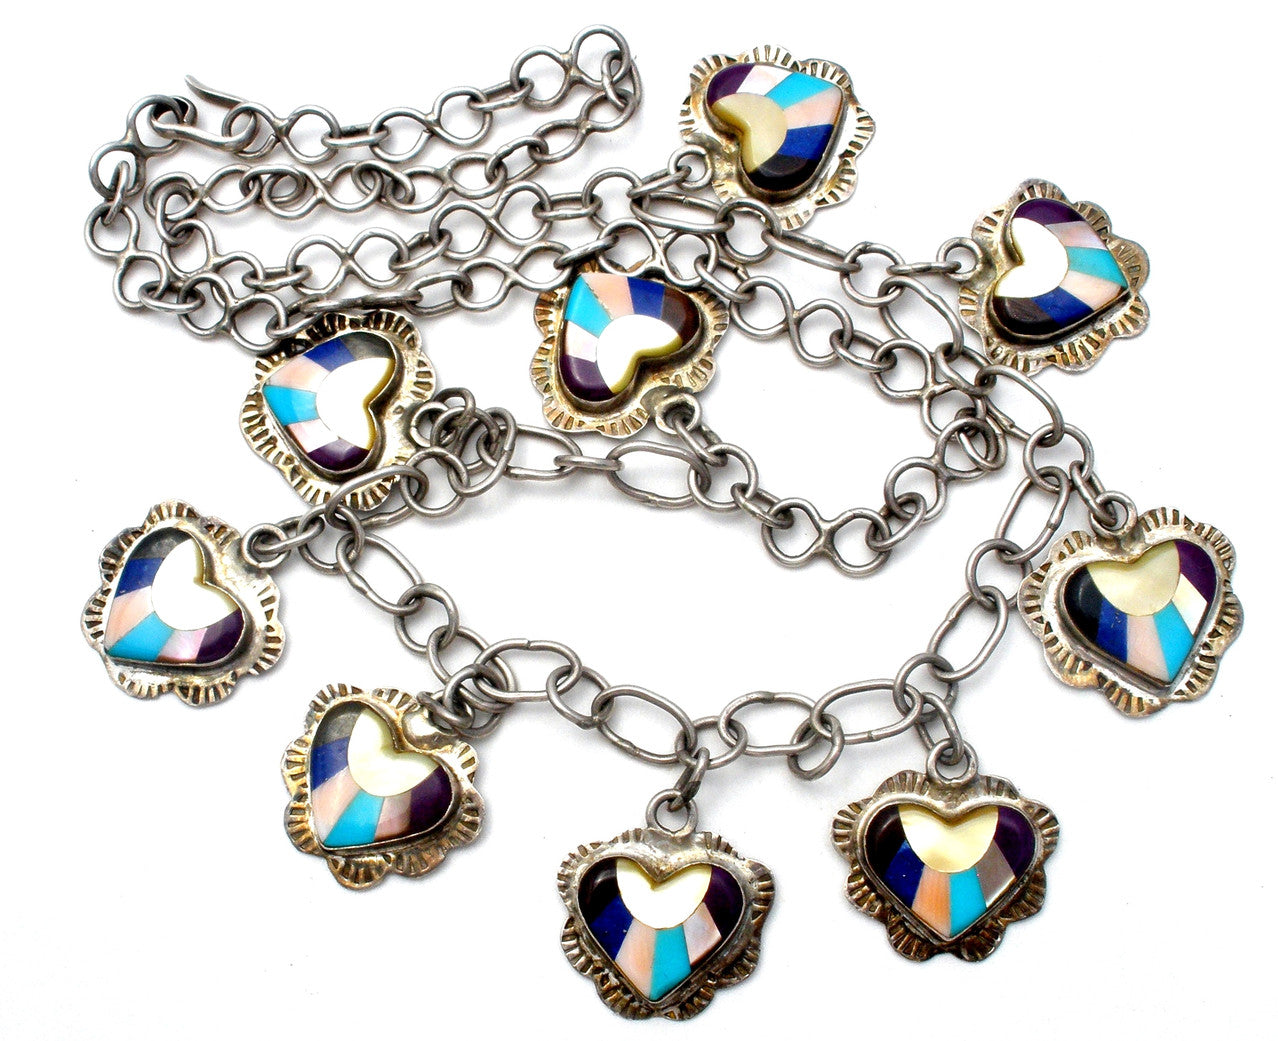 Sterling Silver Heart Necklace with Gemstones Vintage the jewelry lady's store